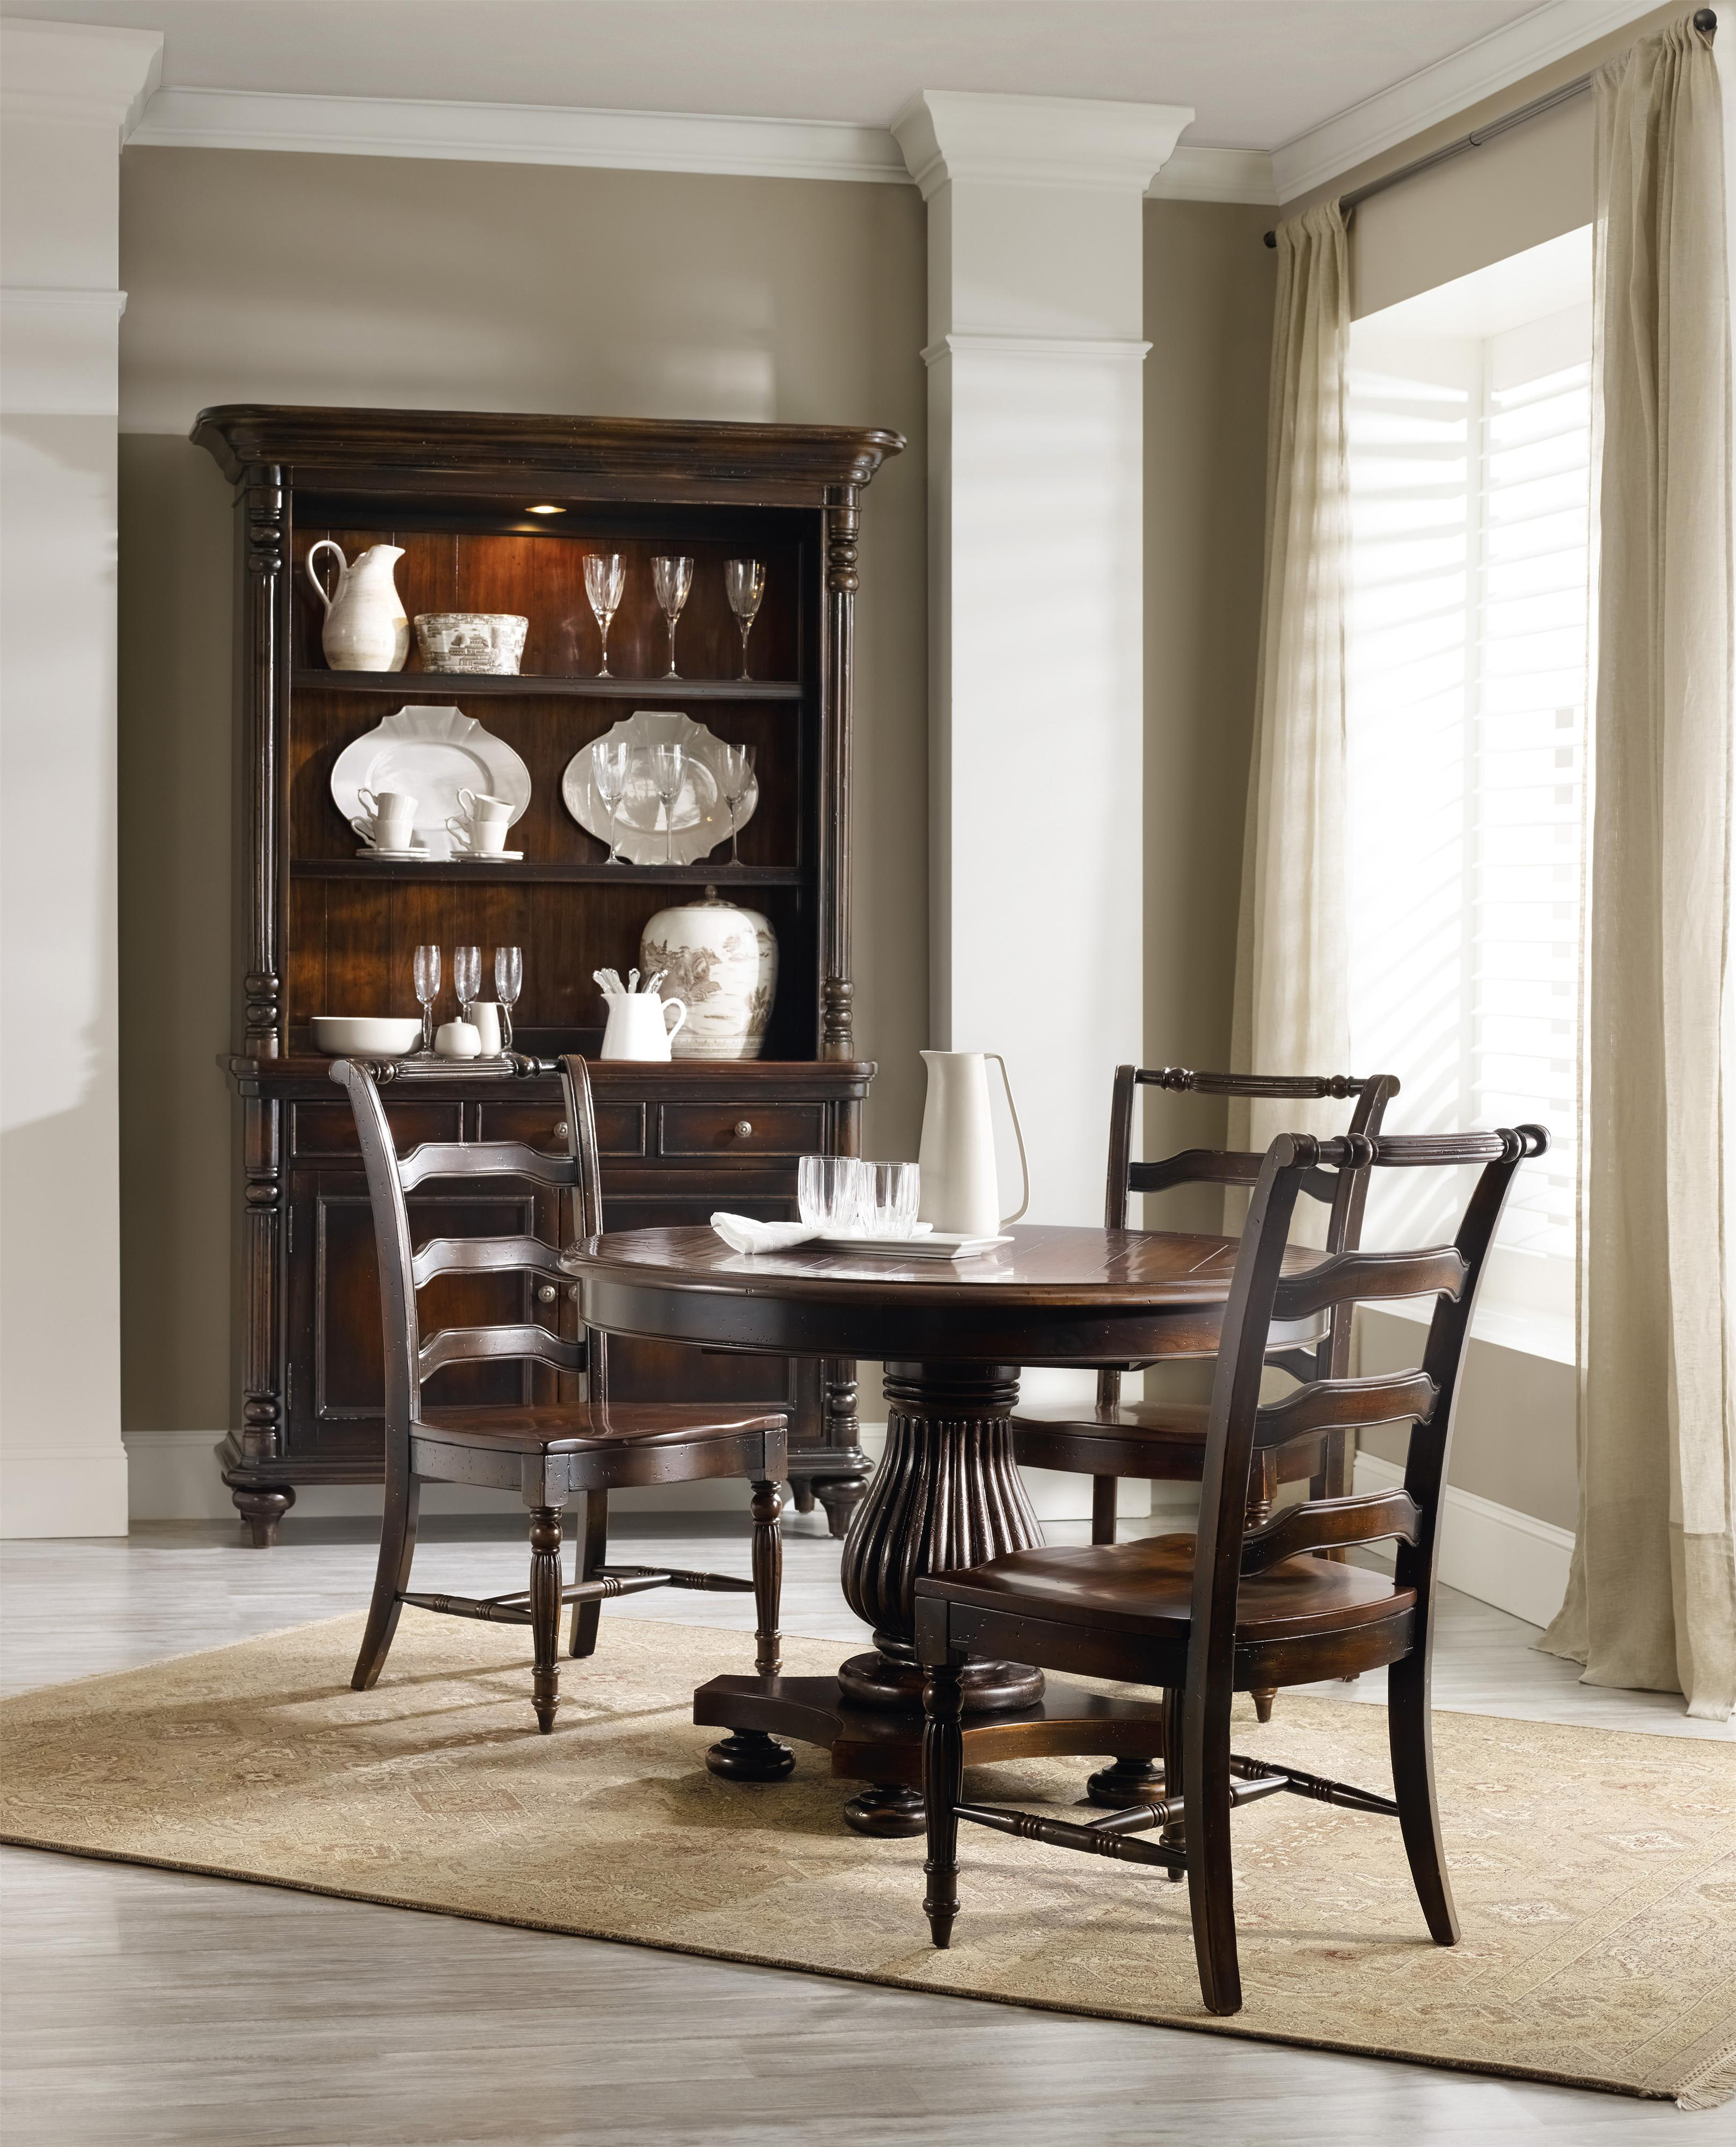 Hooker Furniture Eastridge Casual Dining Room Group - Item Number: 5177 Dining Group 4